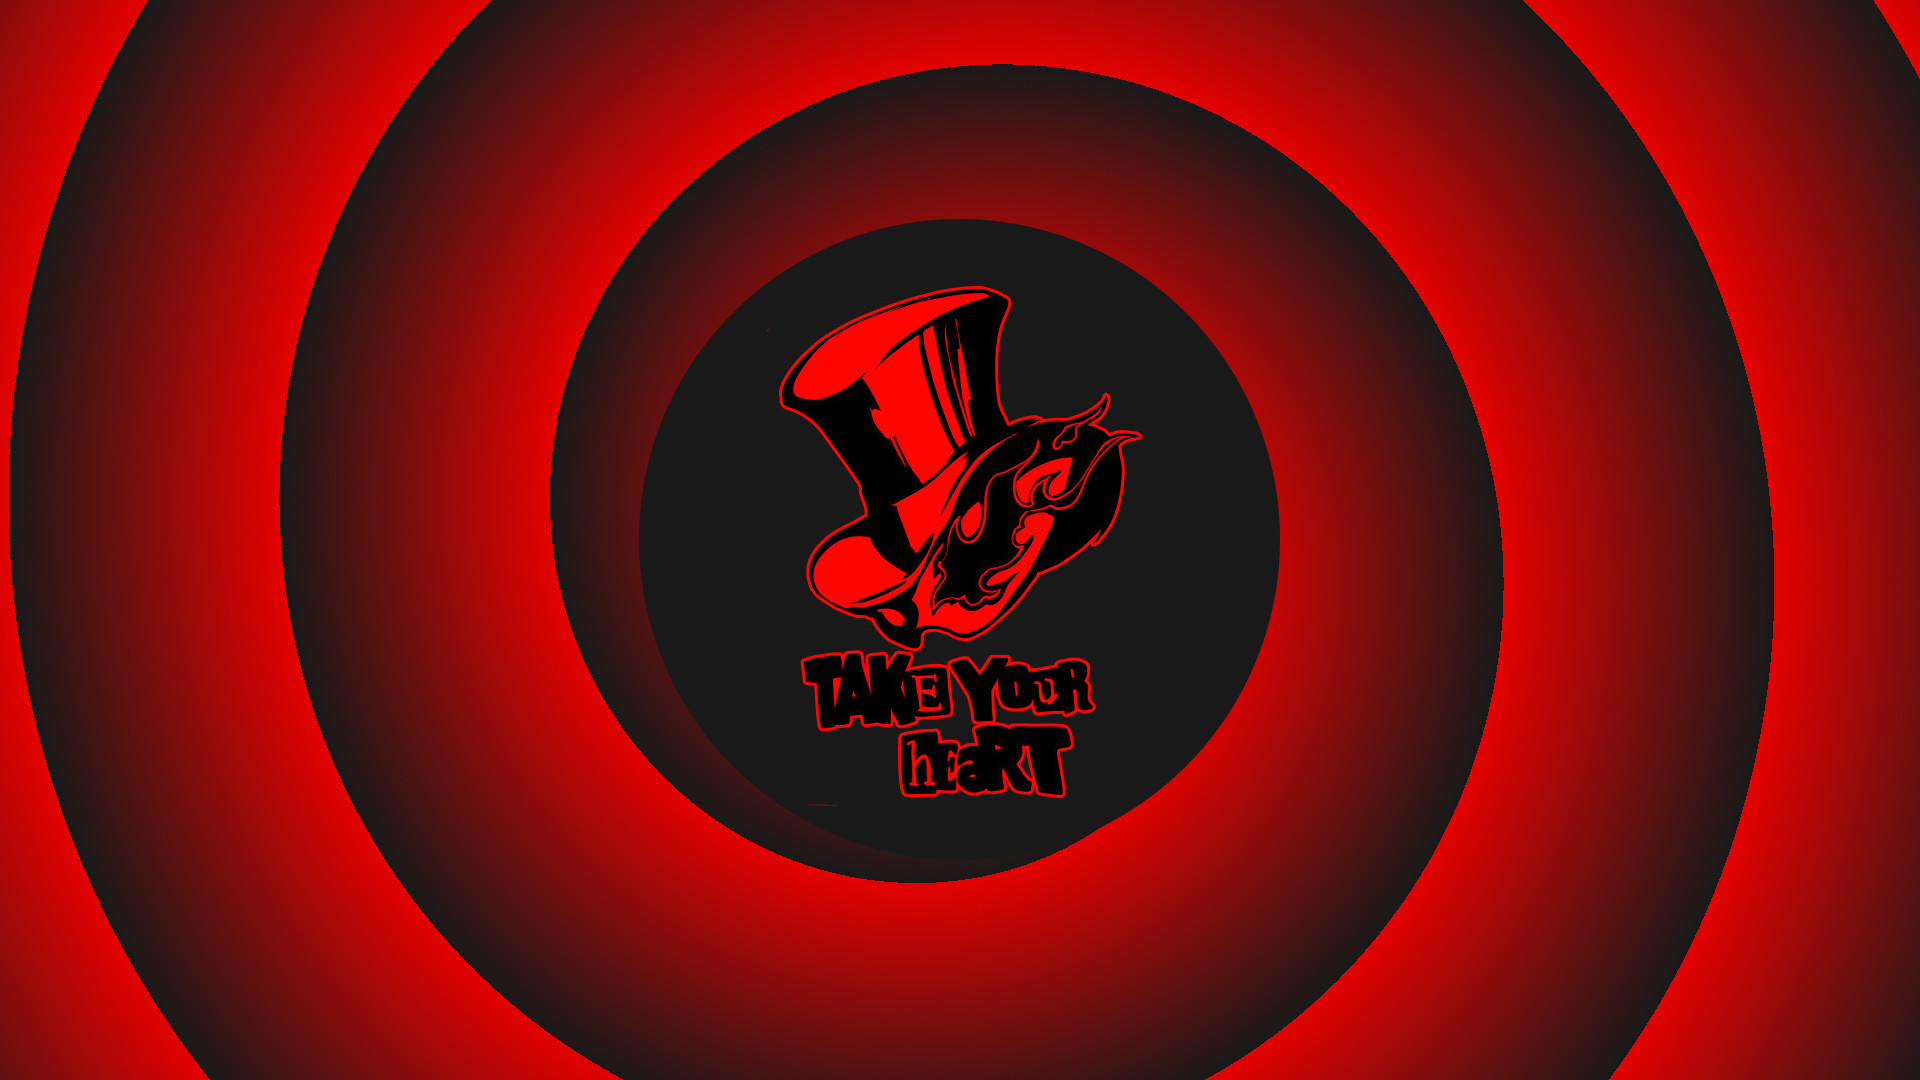 … Persona 5 – Take Your Heart PC Wallpaper by thesquidaddict